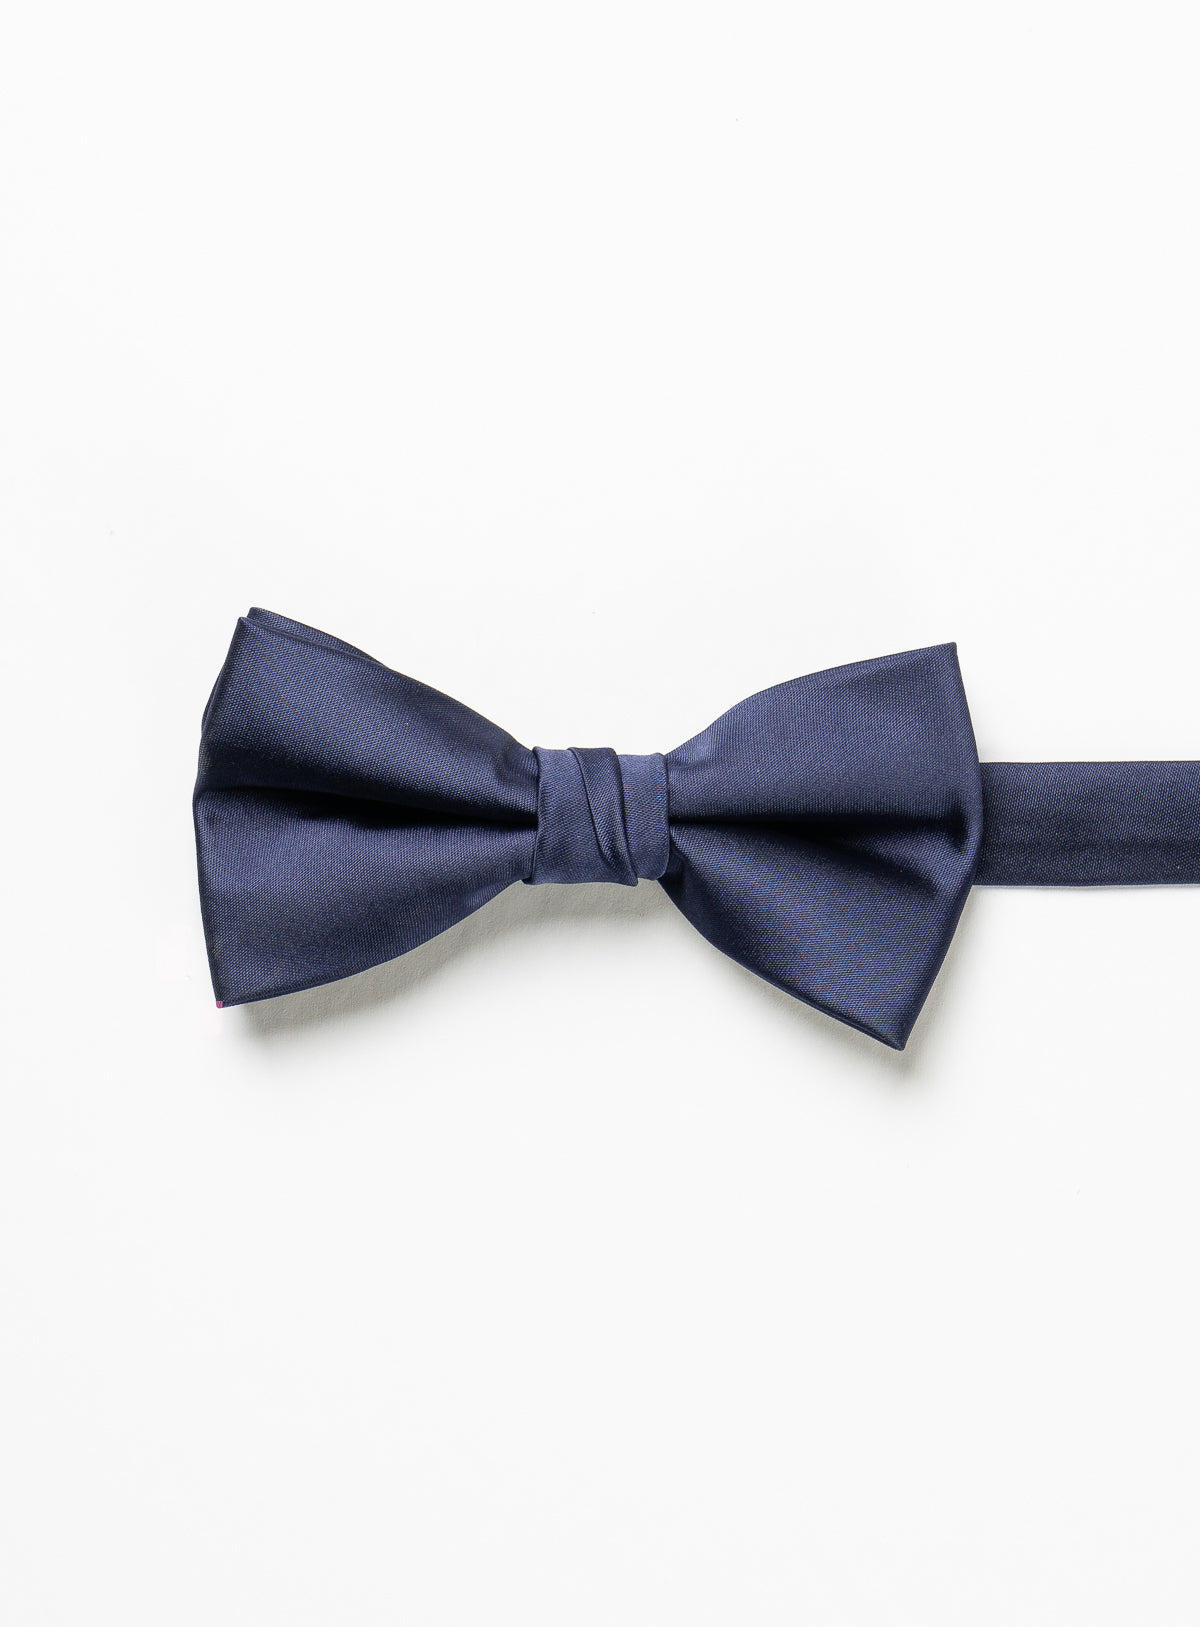 solid navy bow tie - anthony of london -navy